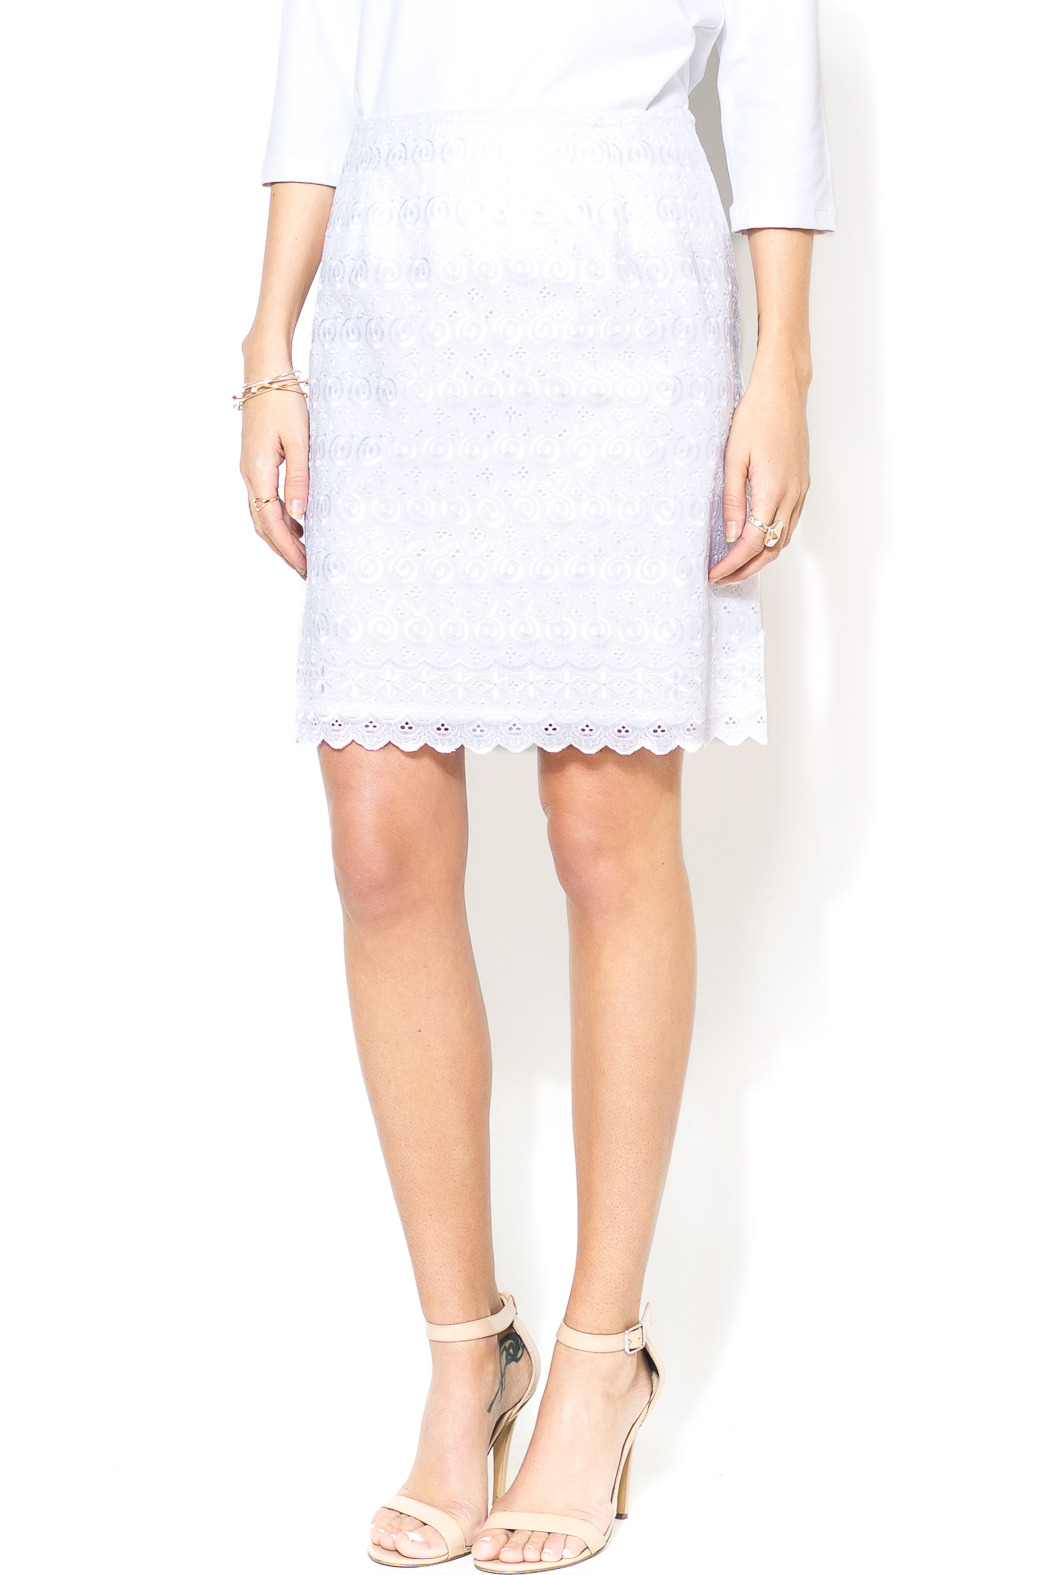 STITCH Everyday Lace White Skirt - Front Cropped Image